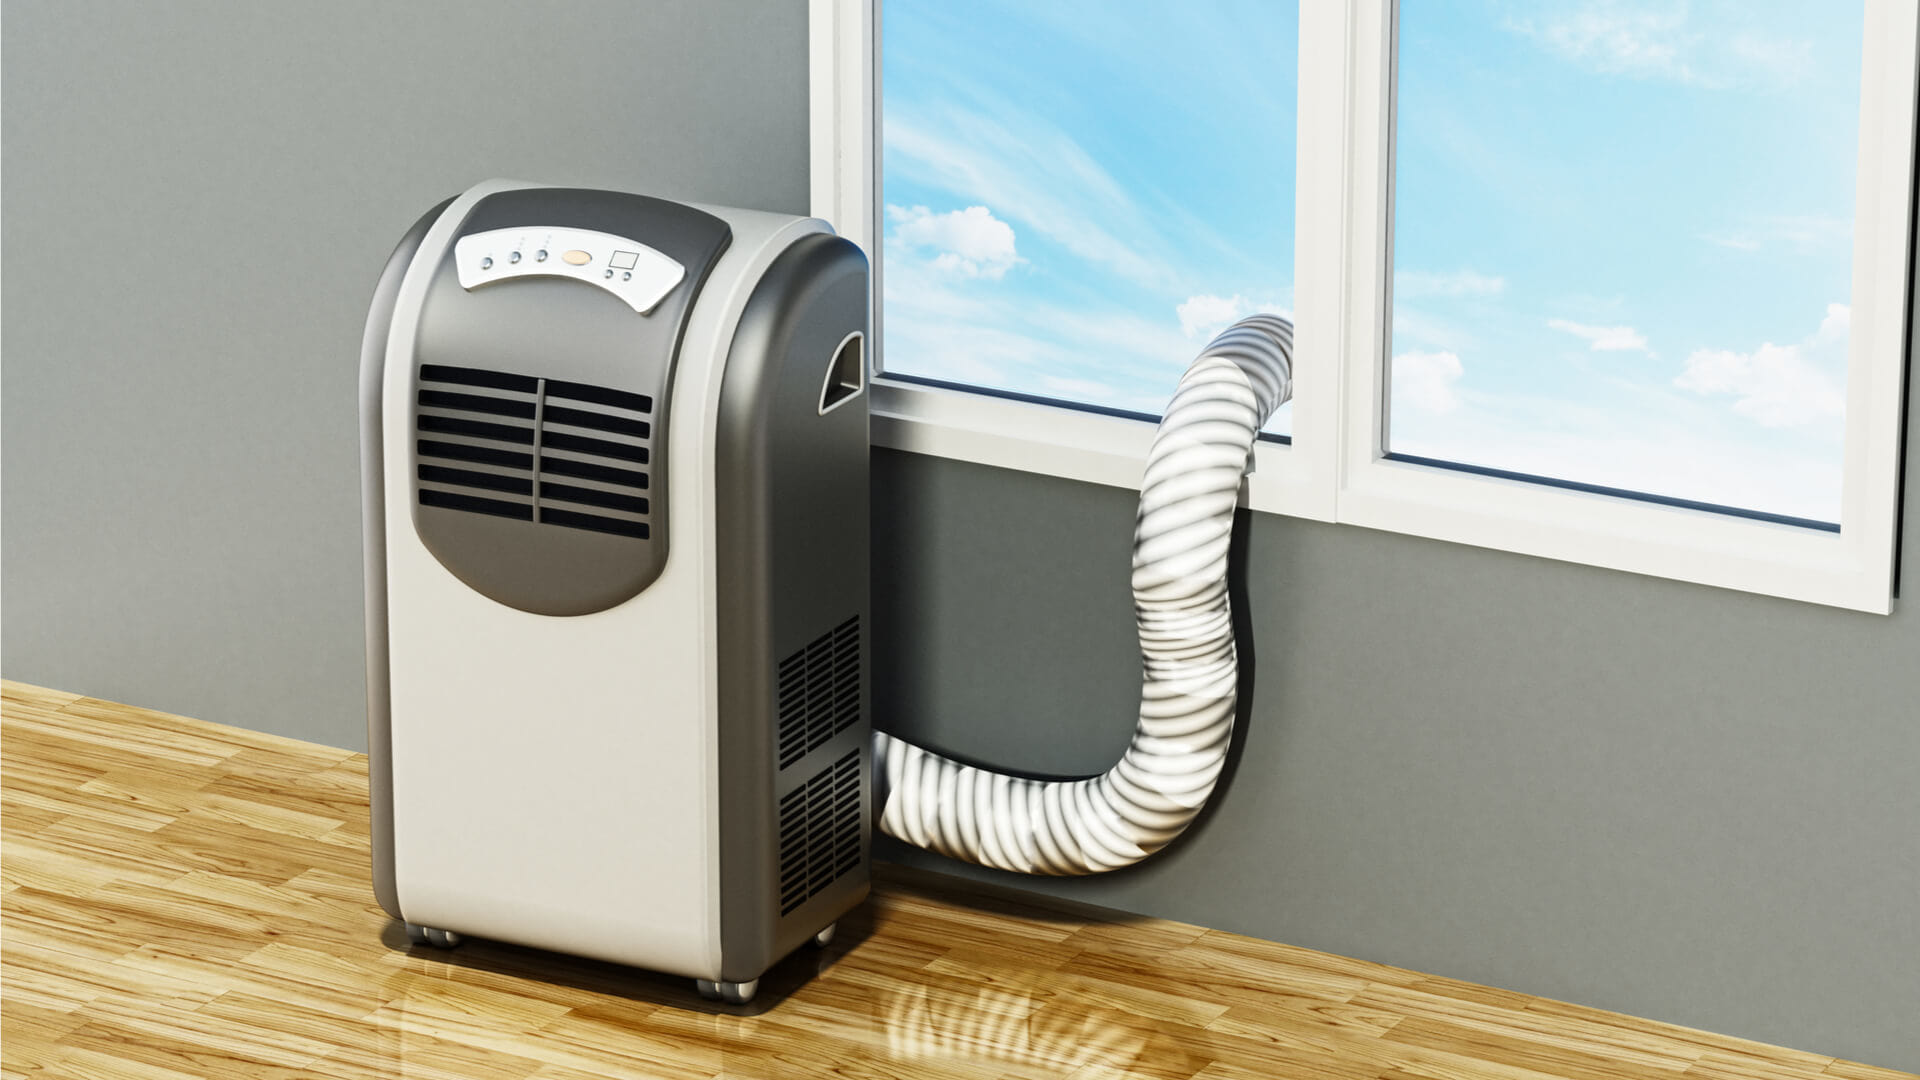 Portable Air Conditioners: What You Need To Know | HowtoHome